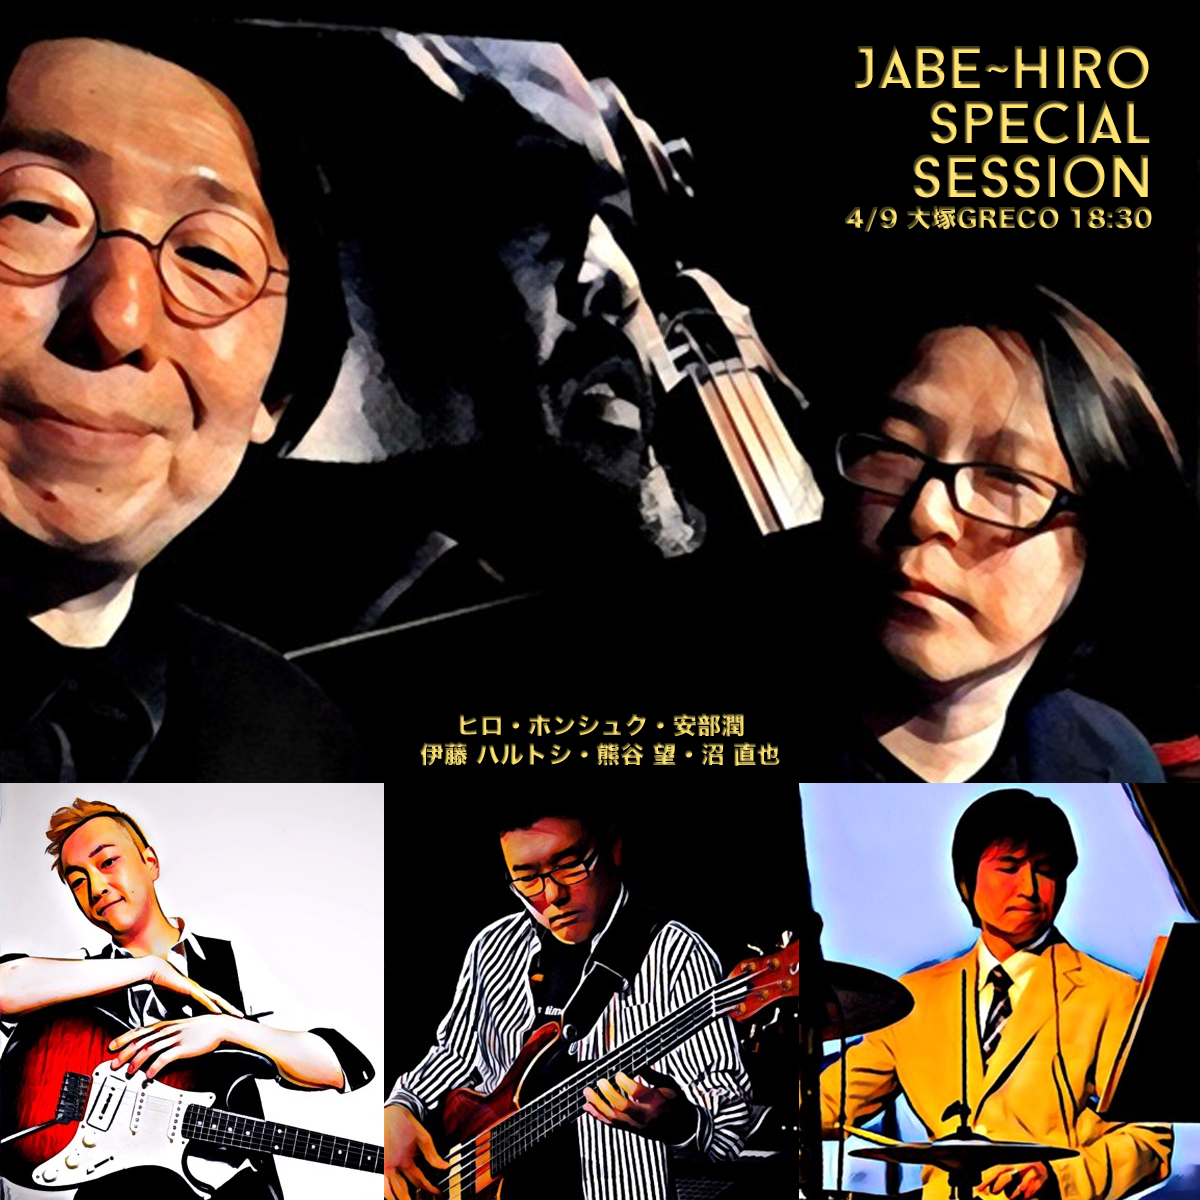 Jane ~ Hiro Special Session